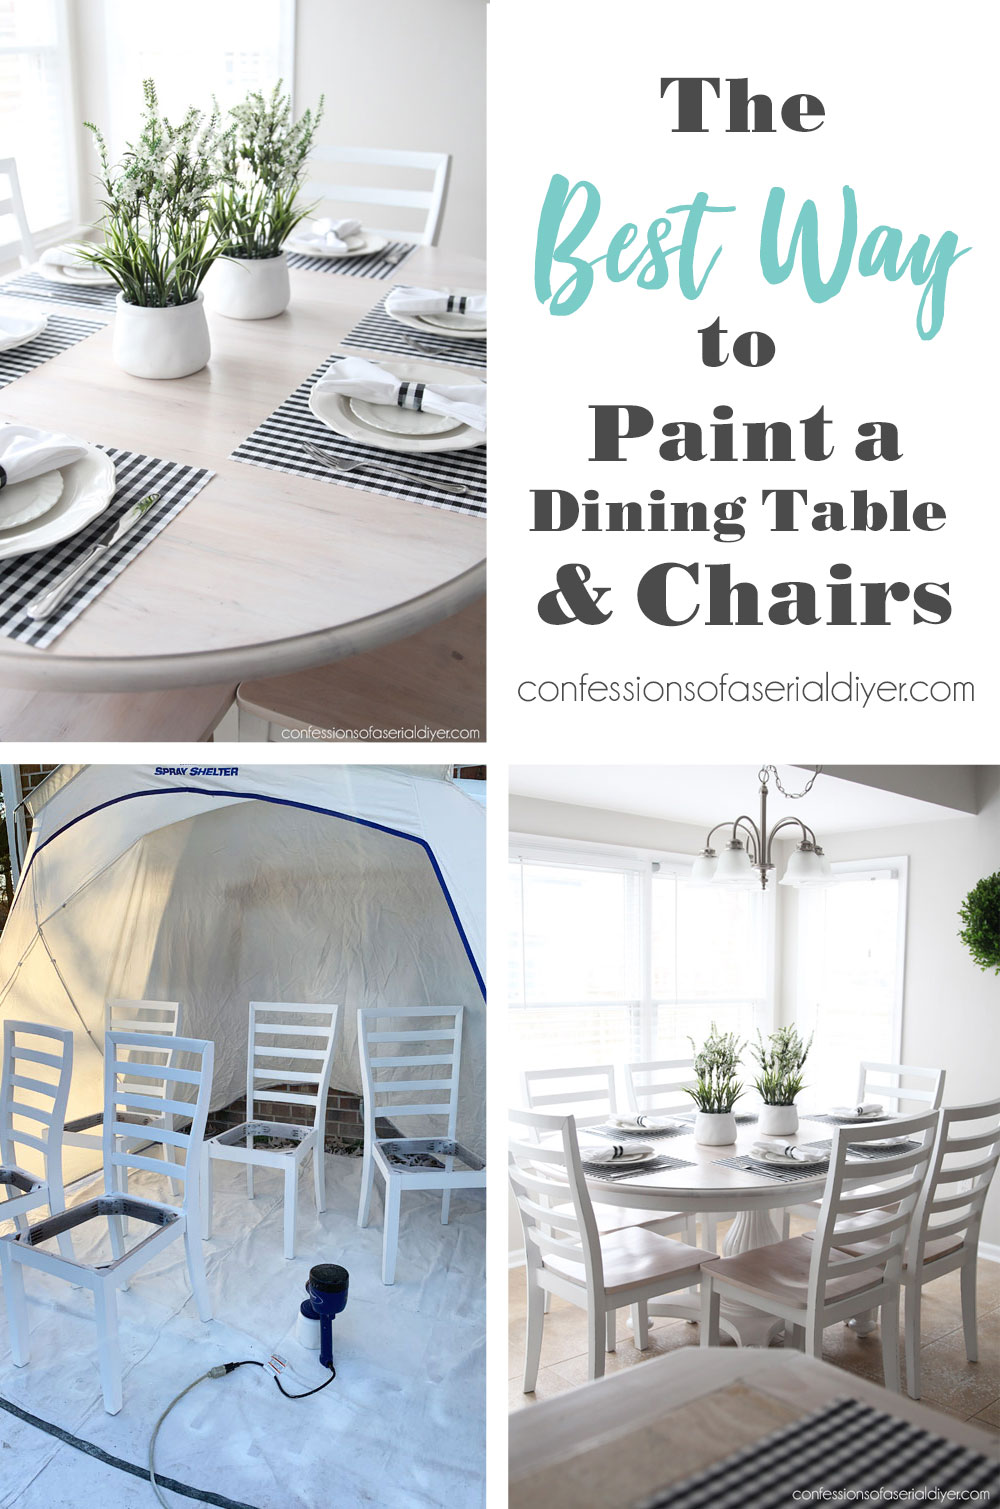 The Best Way to Paint a Dining Table and Chairs